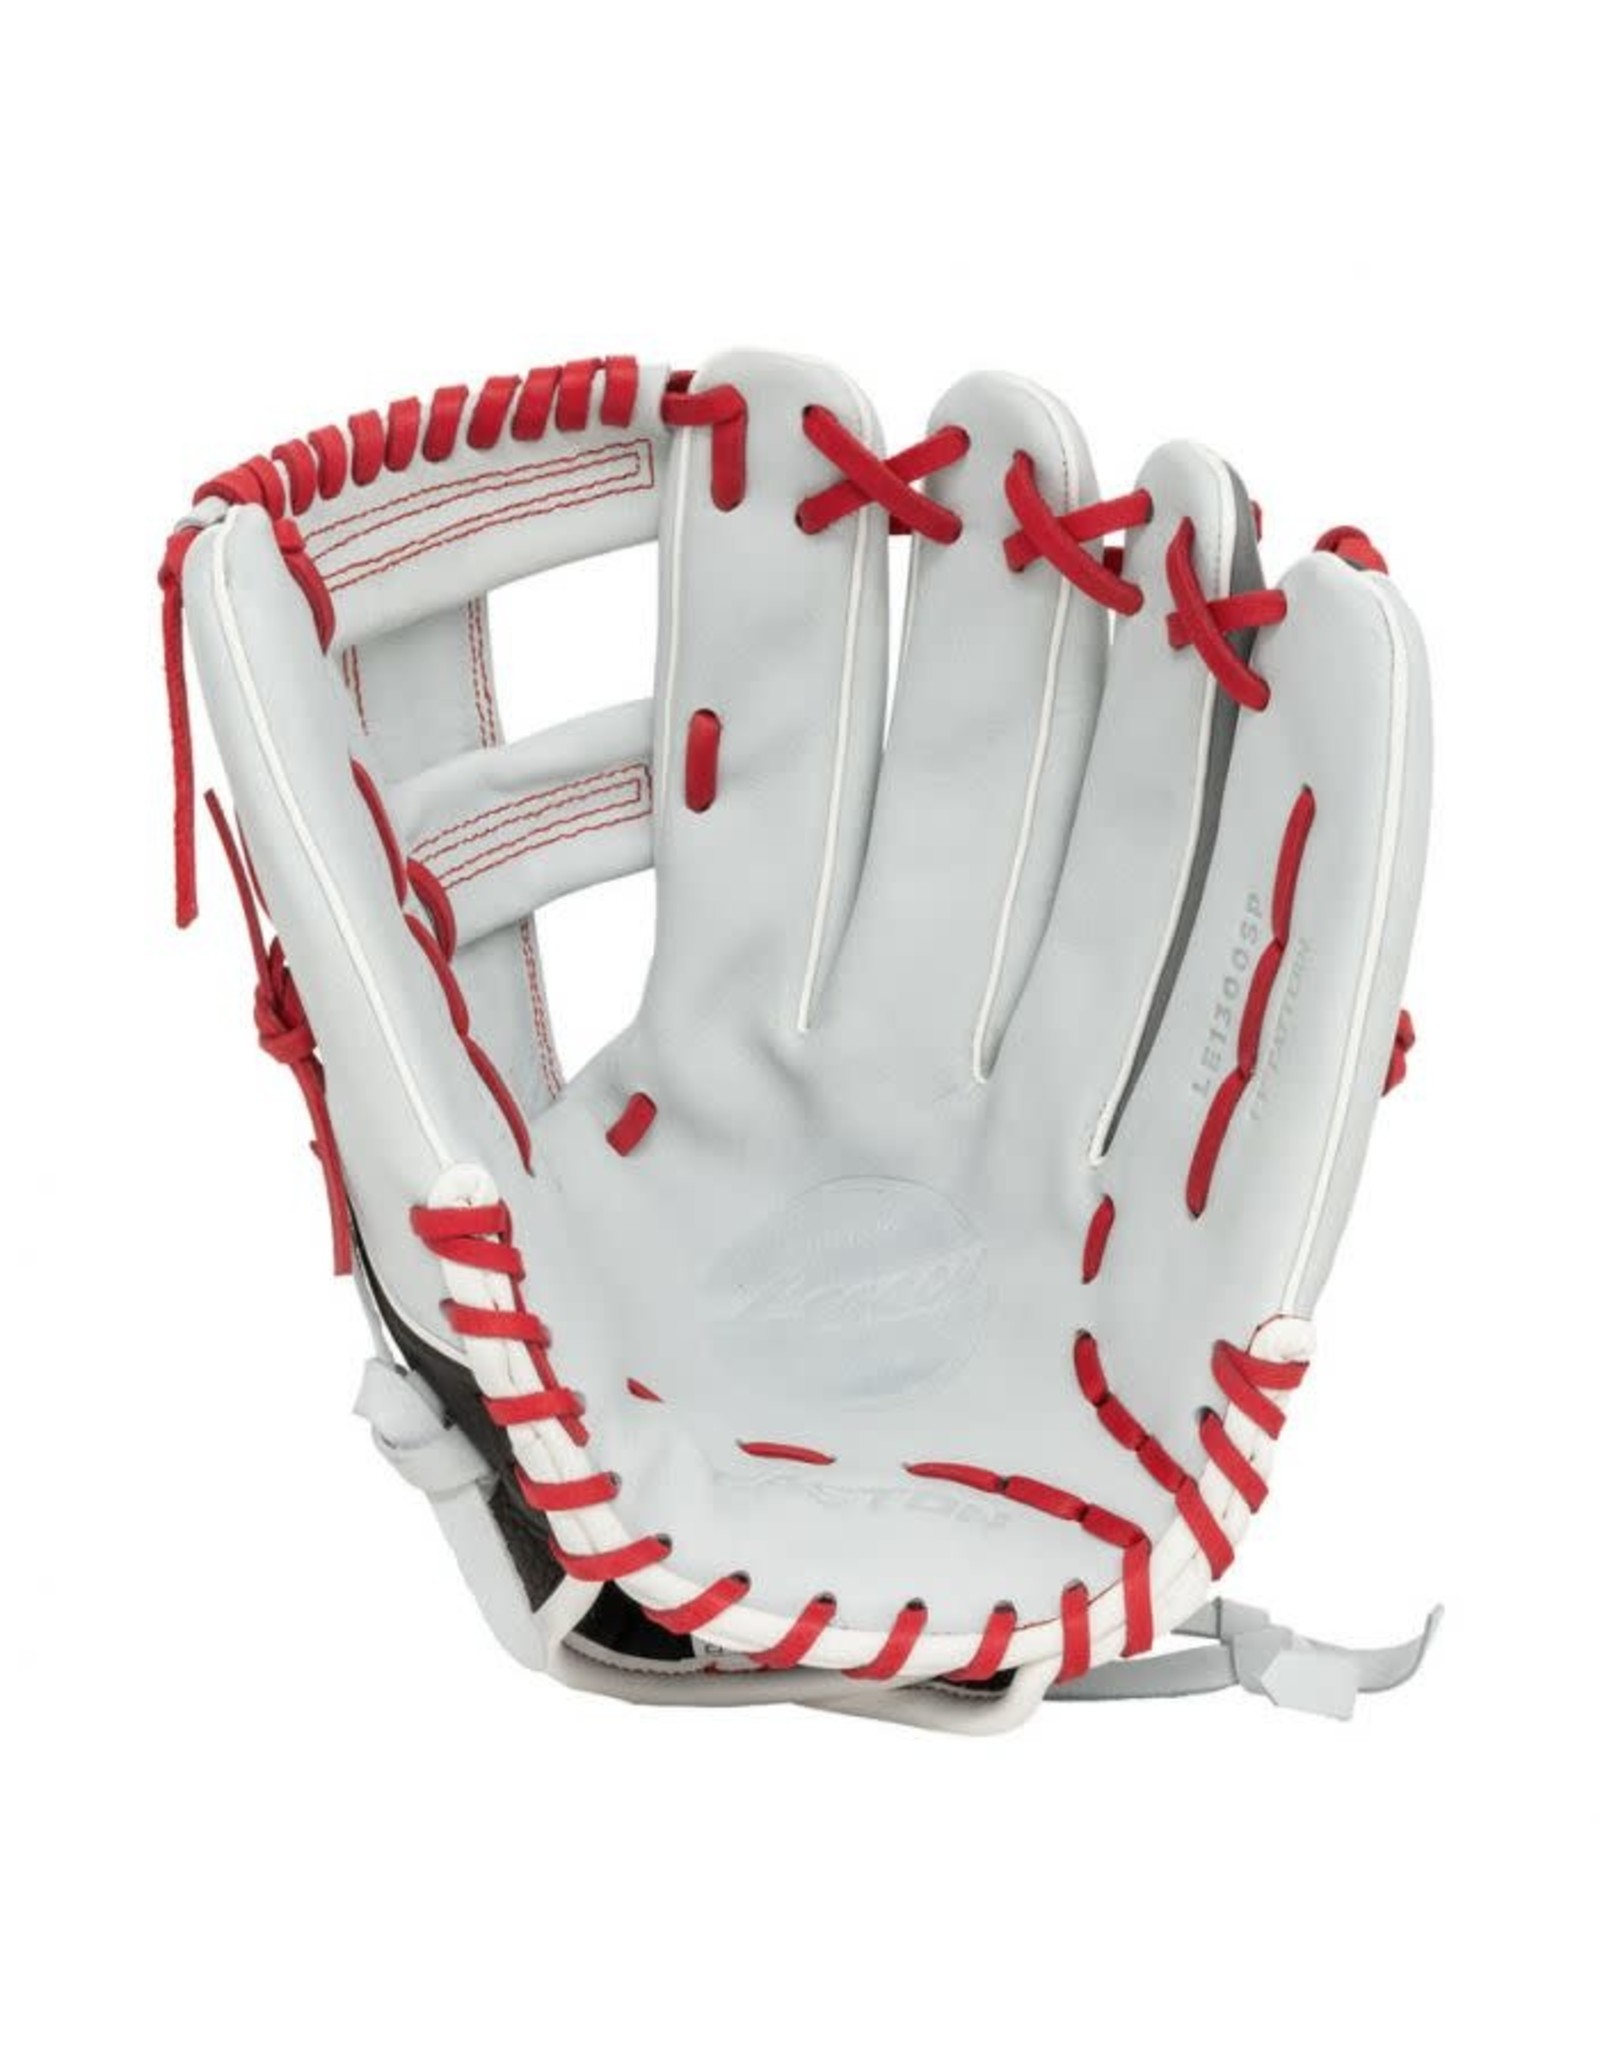 EASTON LEGACY ELITE SOFTBALL GLOVE